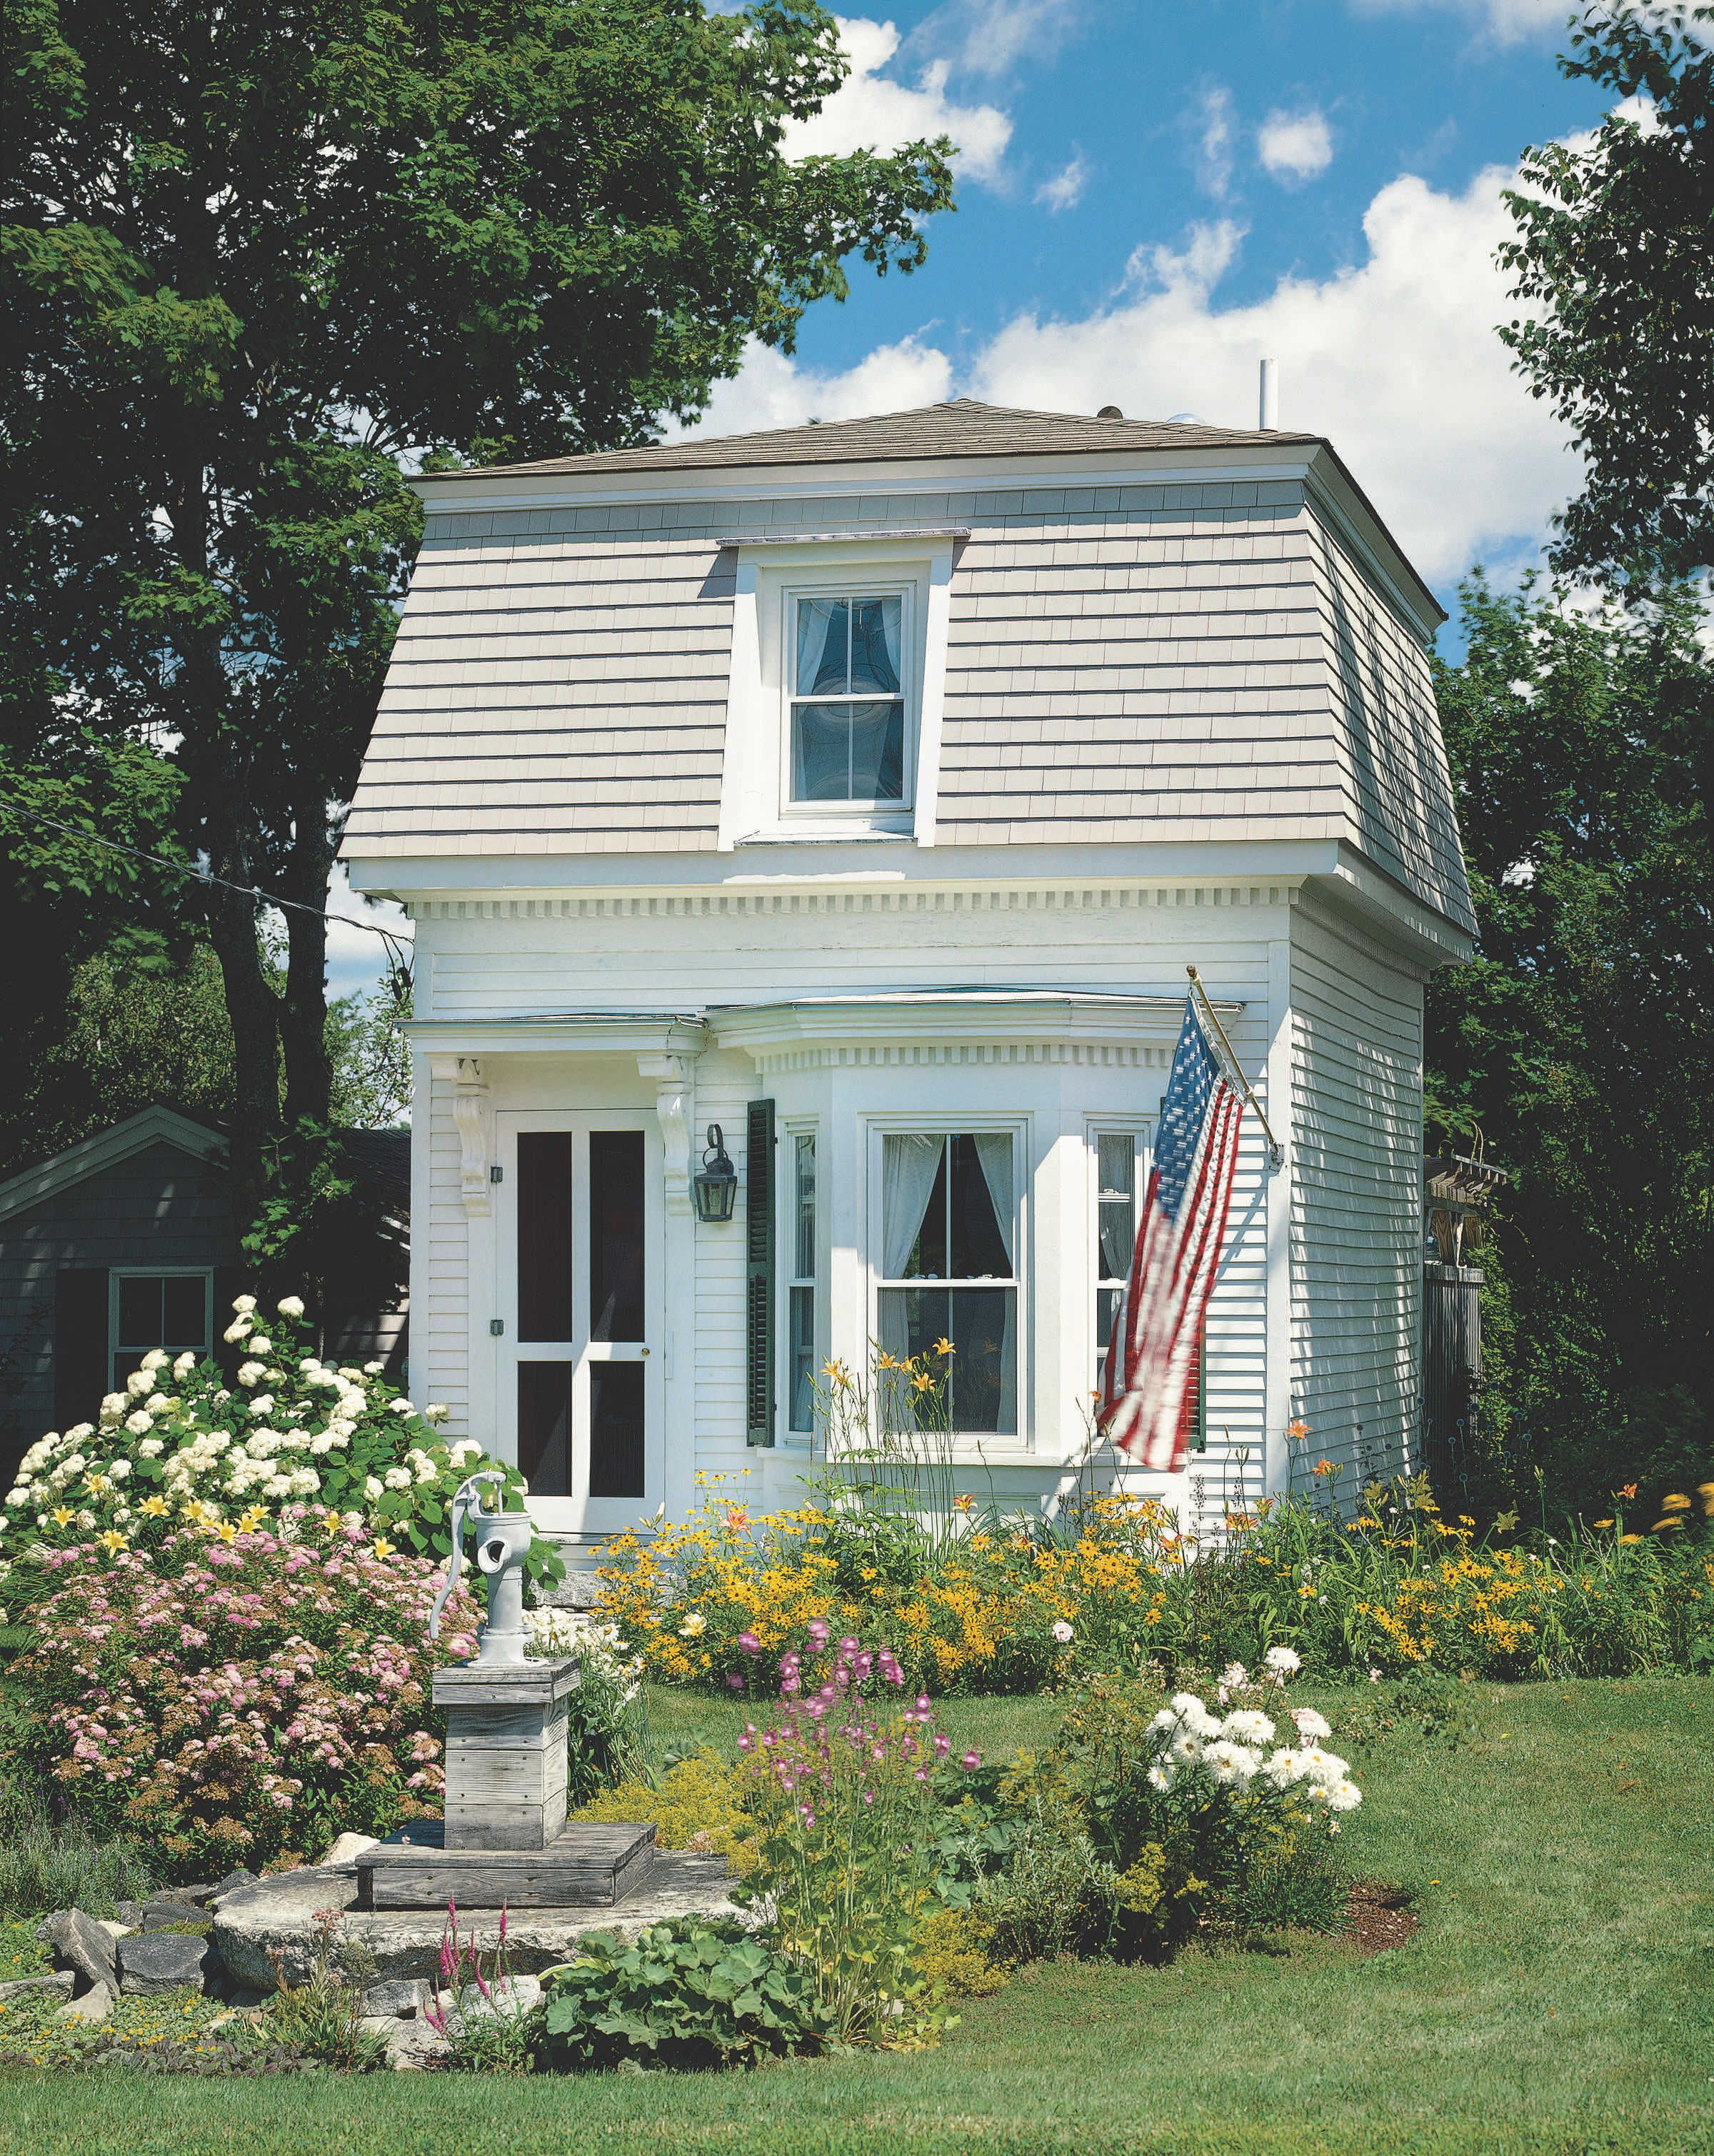 Small Space Living Ideas Inspired By An 84 Sq Ft Home Mansard Roof House Restoration Cottage